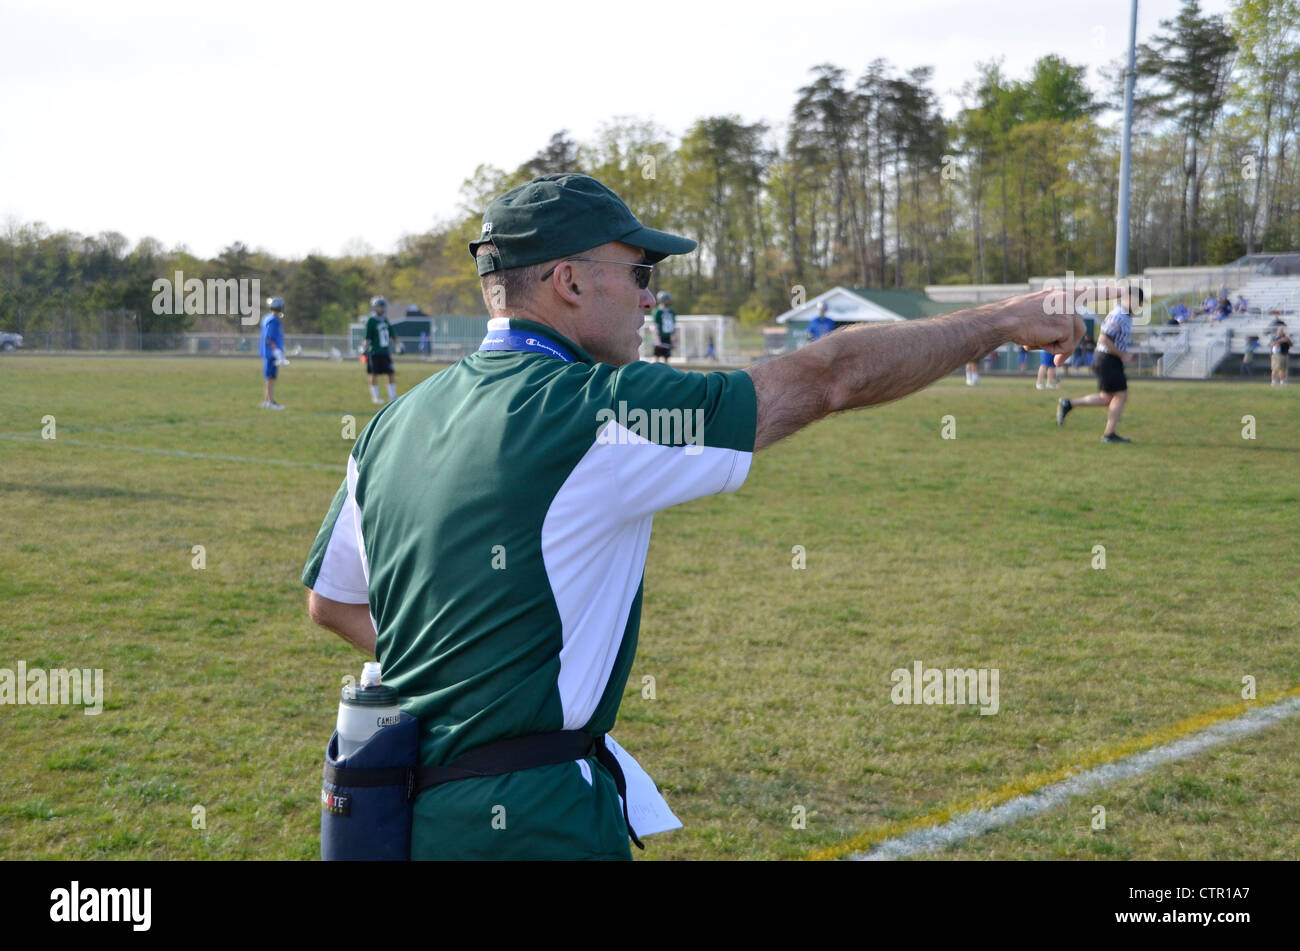 coach yelling instruction from the sidelines in a high school lacrosse game - Stock Image